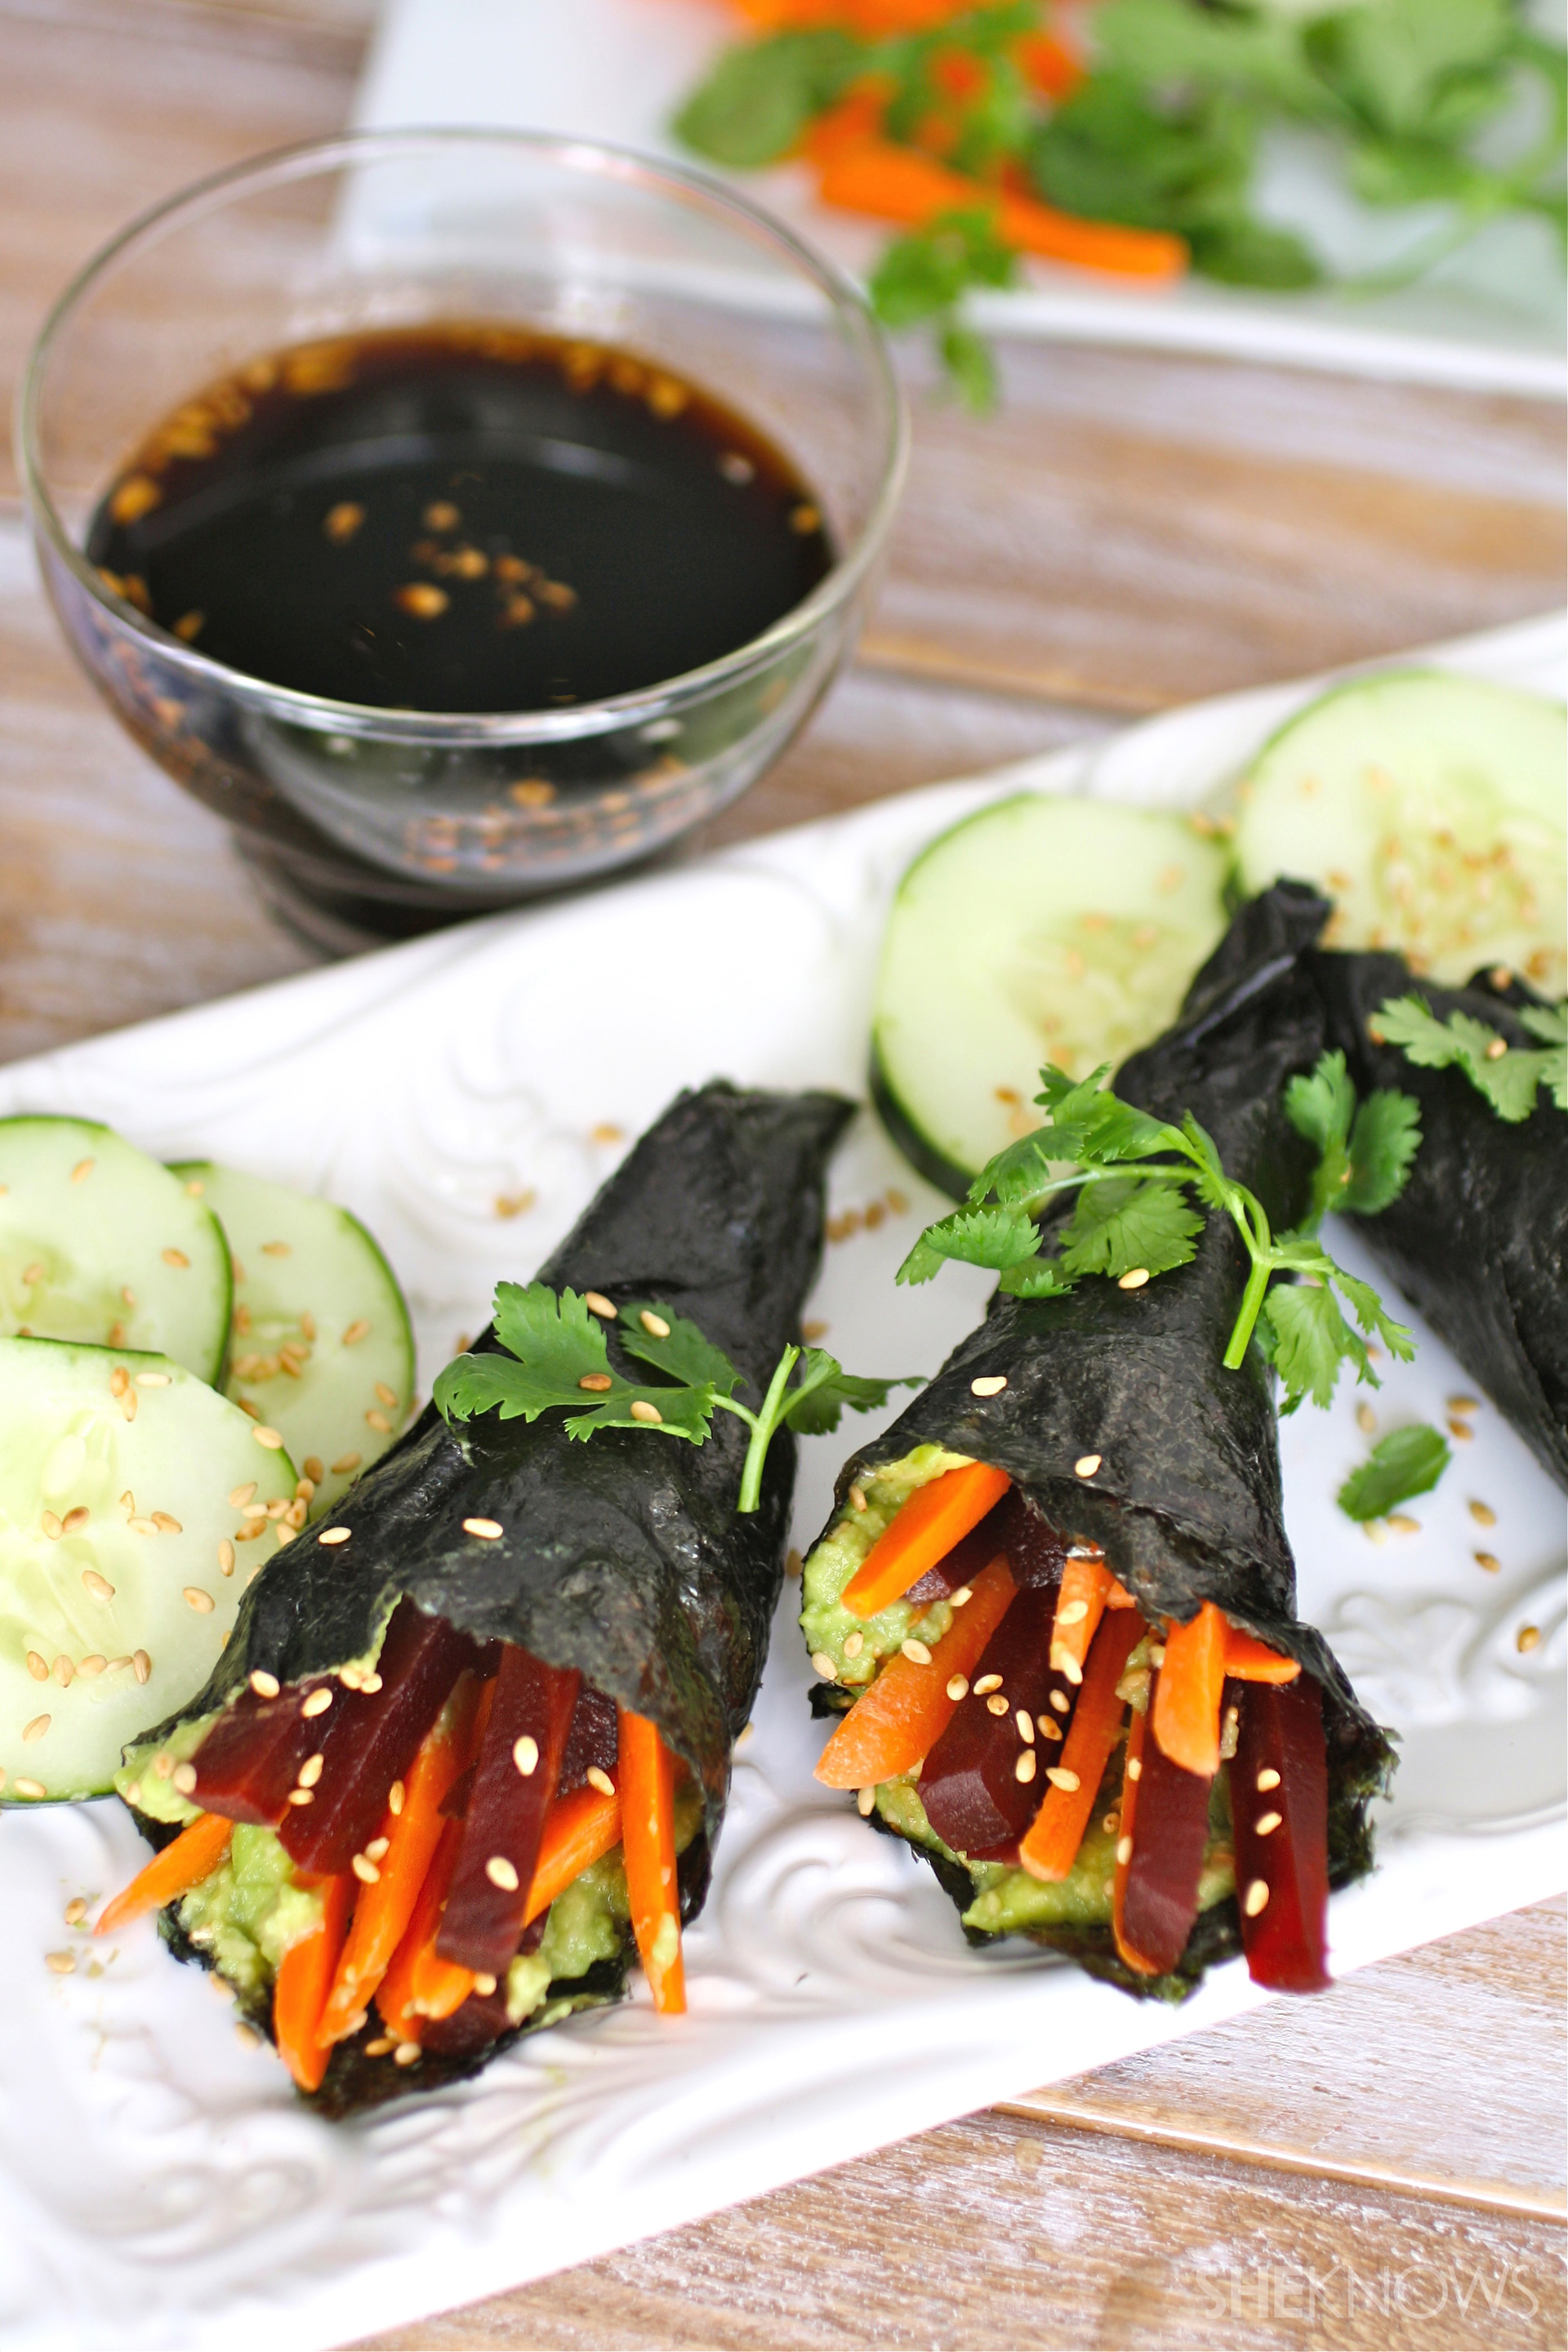 Vegan avocado and beet hand rolls with a spicy teriyaki sauce